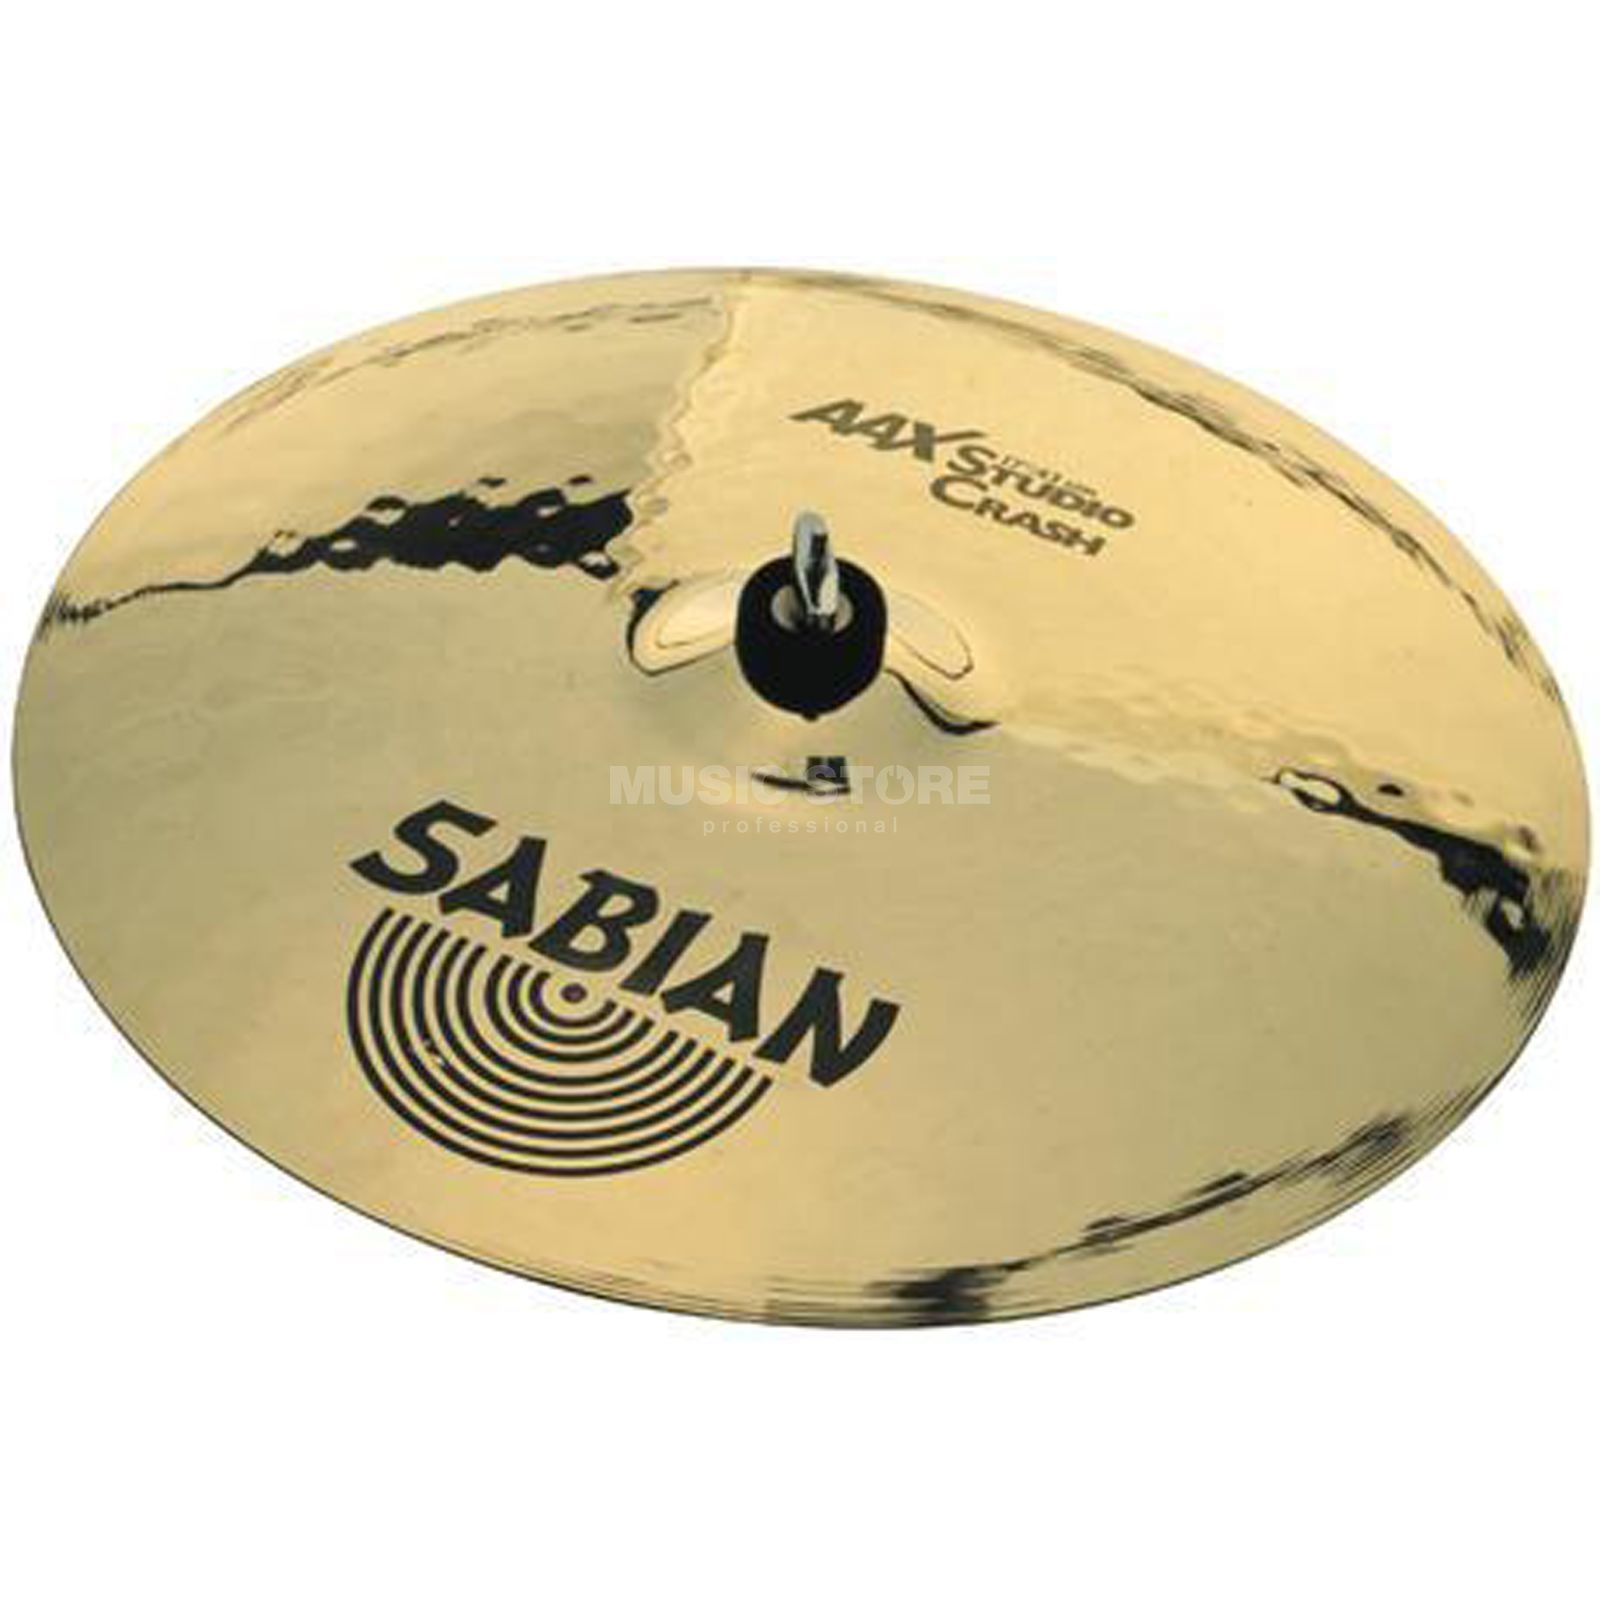 "Sabian AAX Studio Crash 16"" Brilliant Finish Zdjęcie produktu"